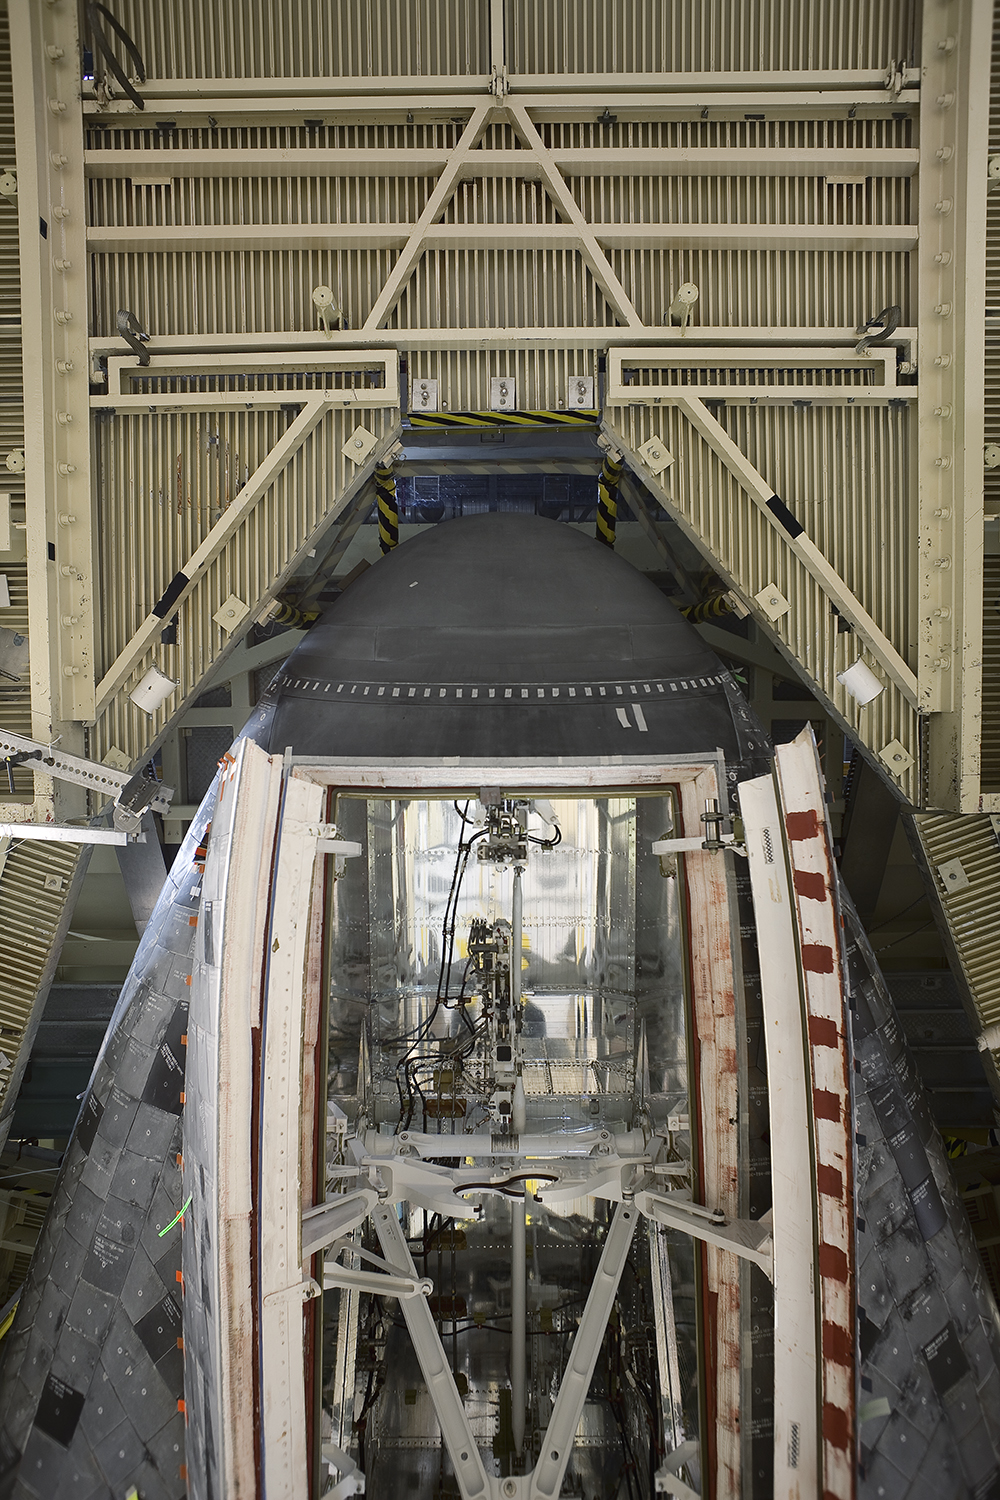 Nose Gear Doors and Platforms Space Shuttle Atlantis